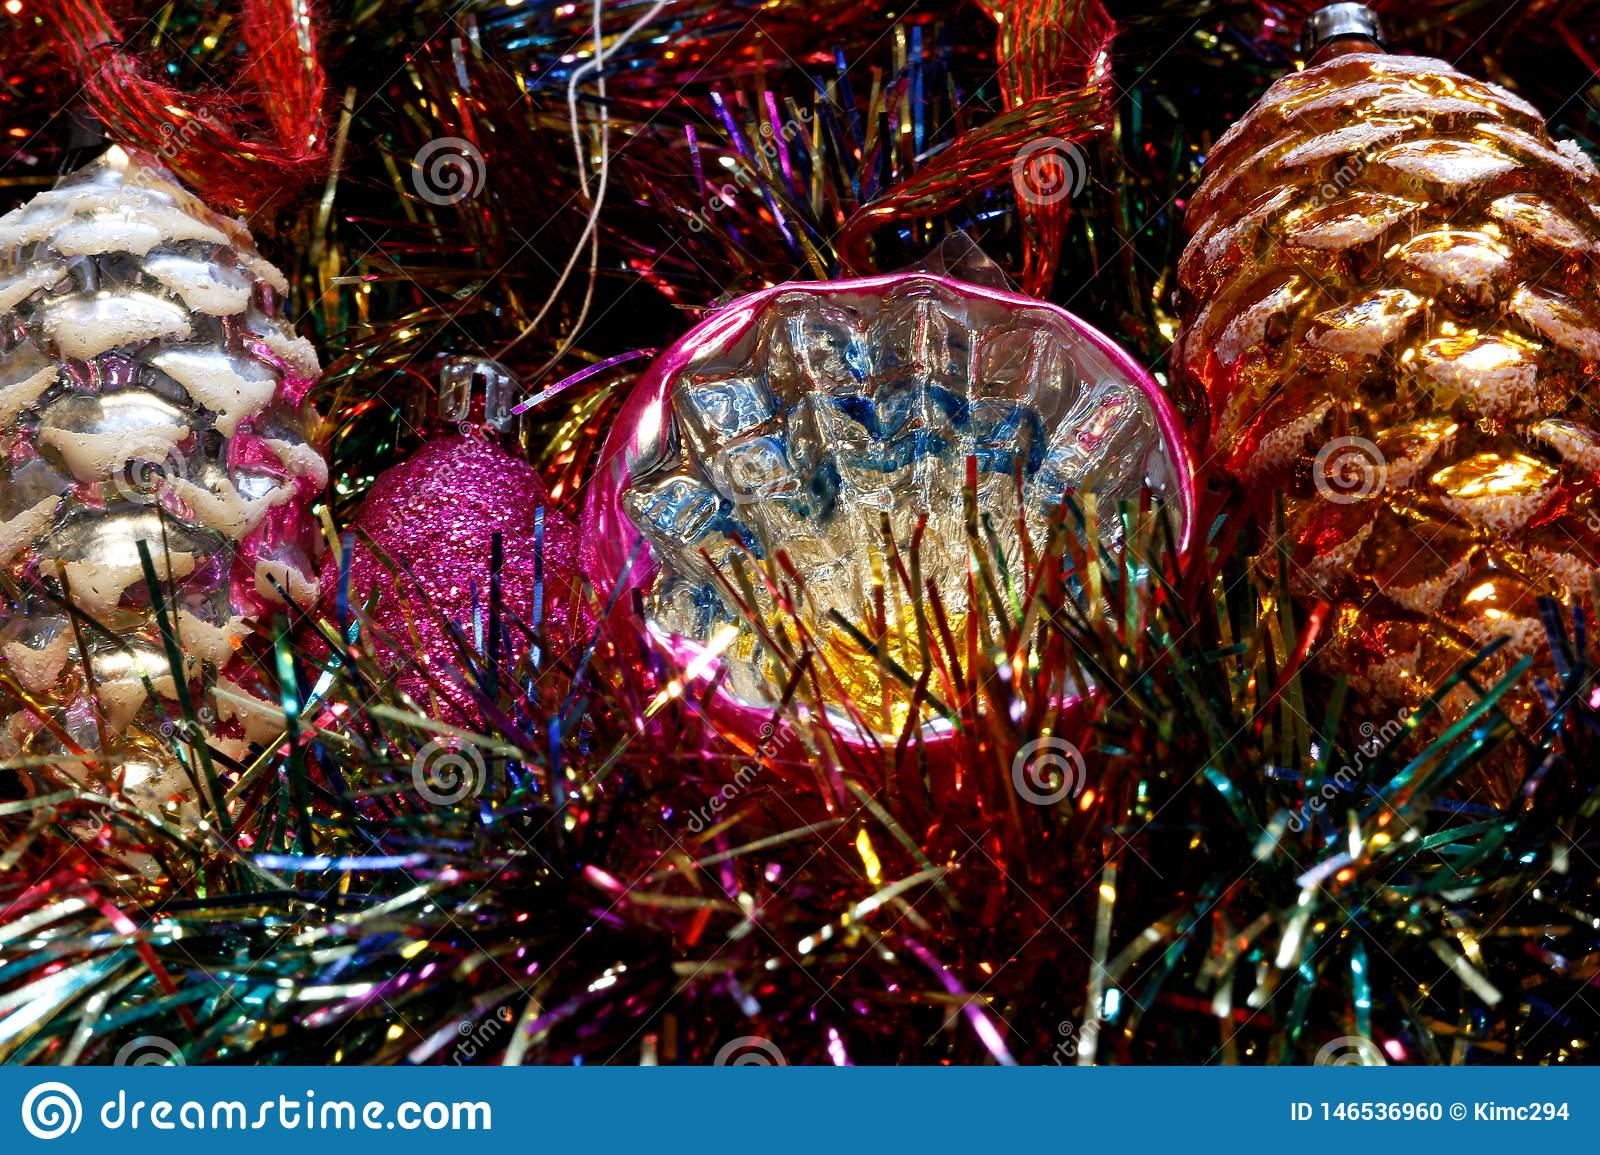 Vintage Christmas Tree Decorations On A Bed Of Glitter Stock Photo Image Of Shining Pink 146536960